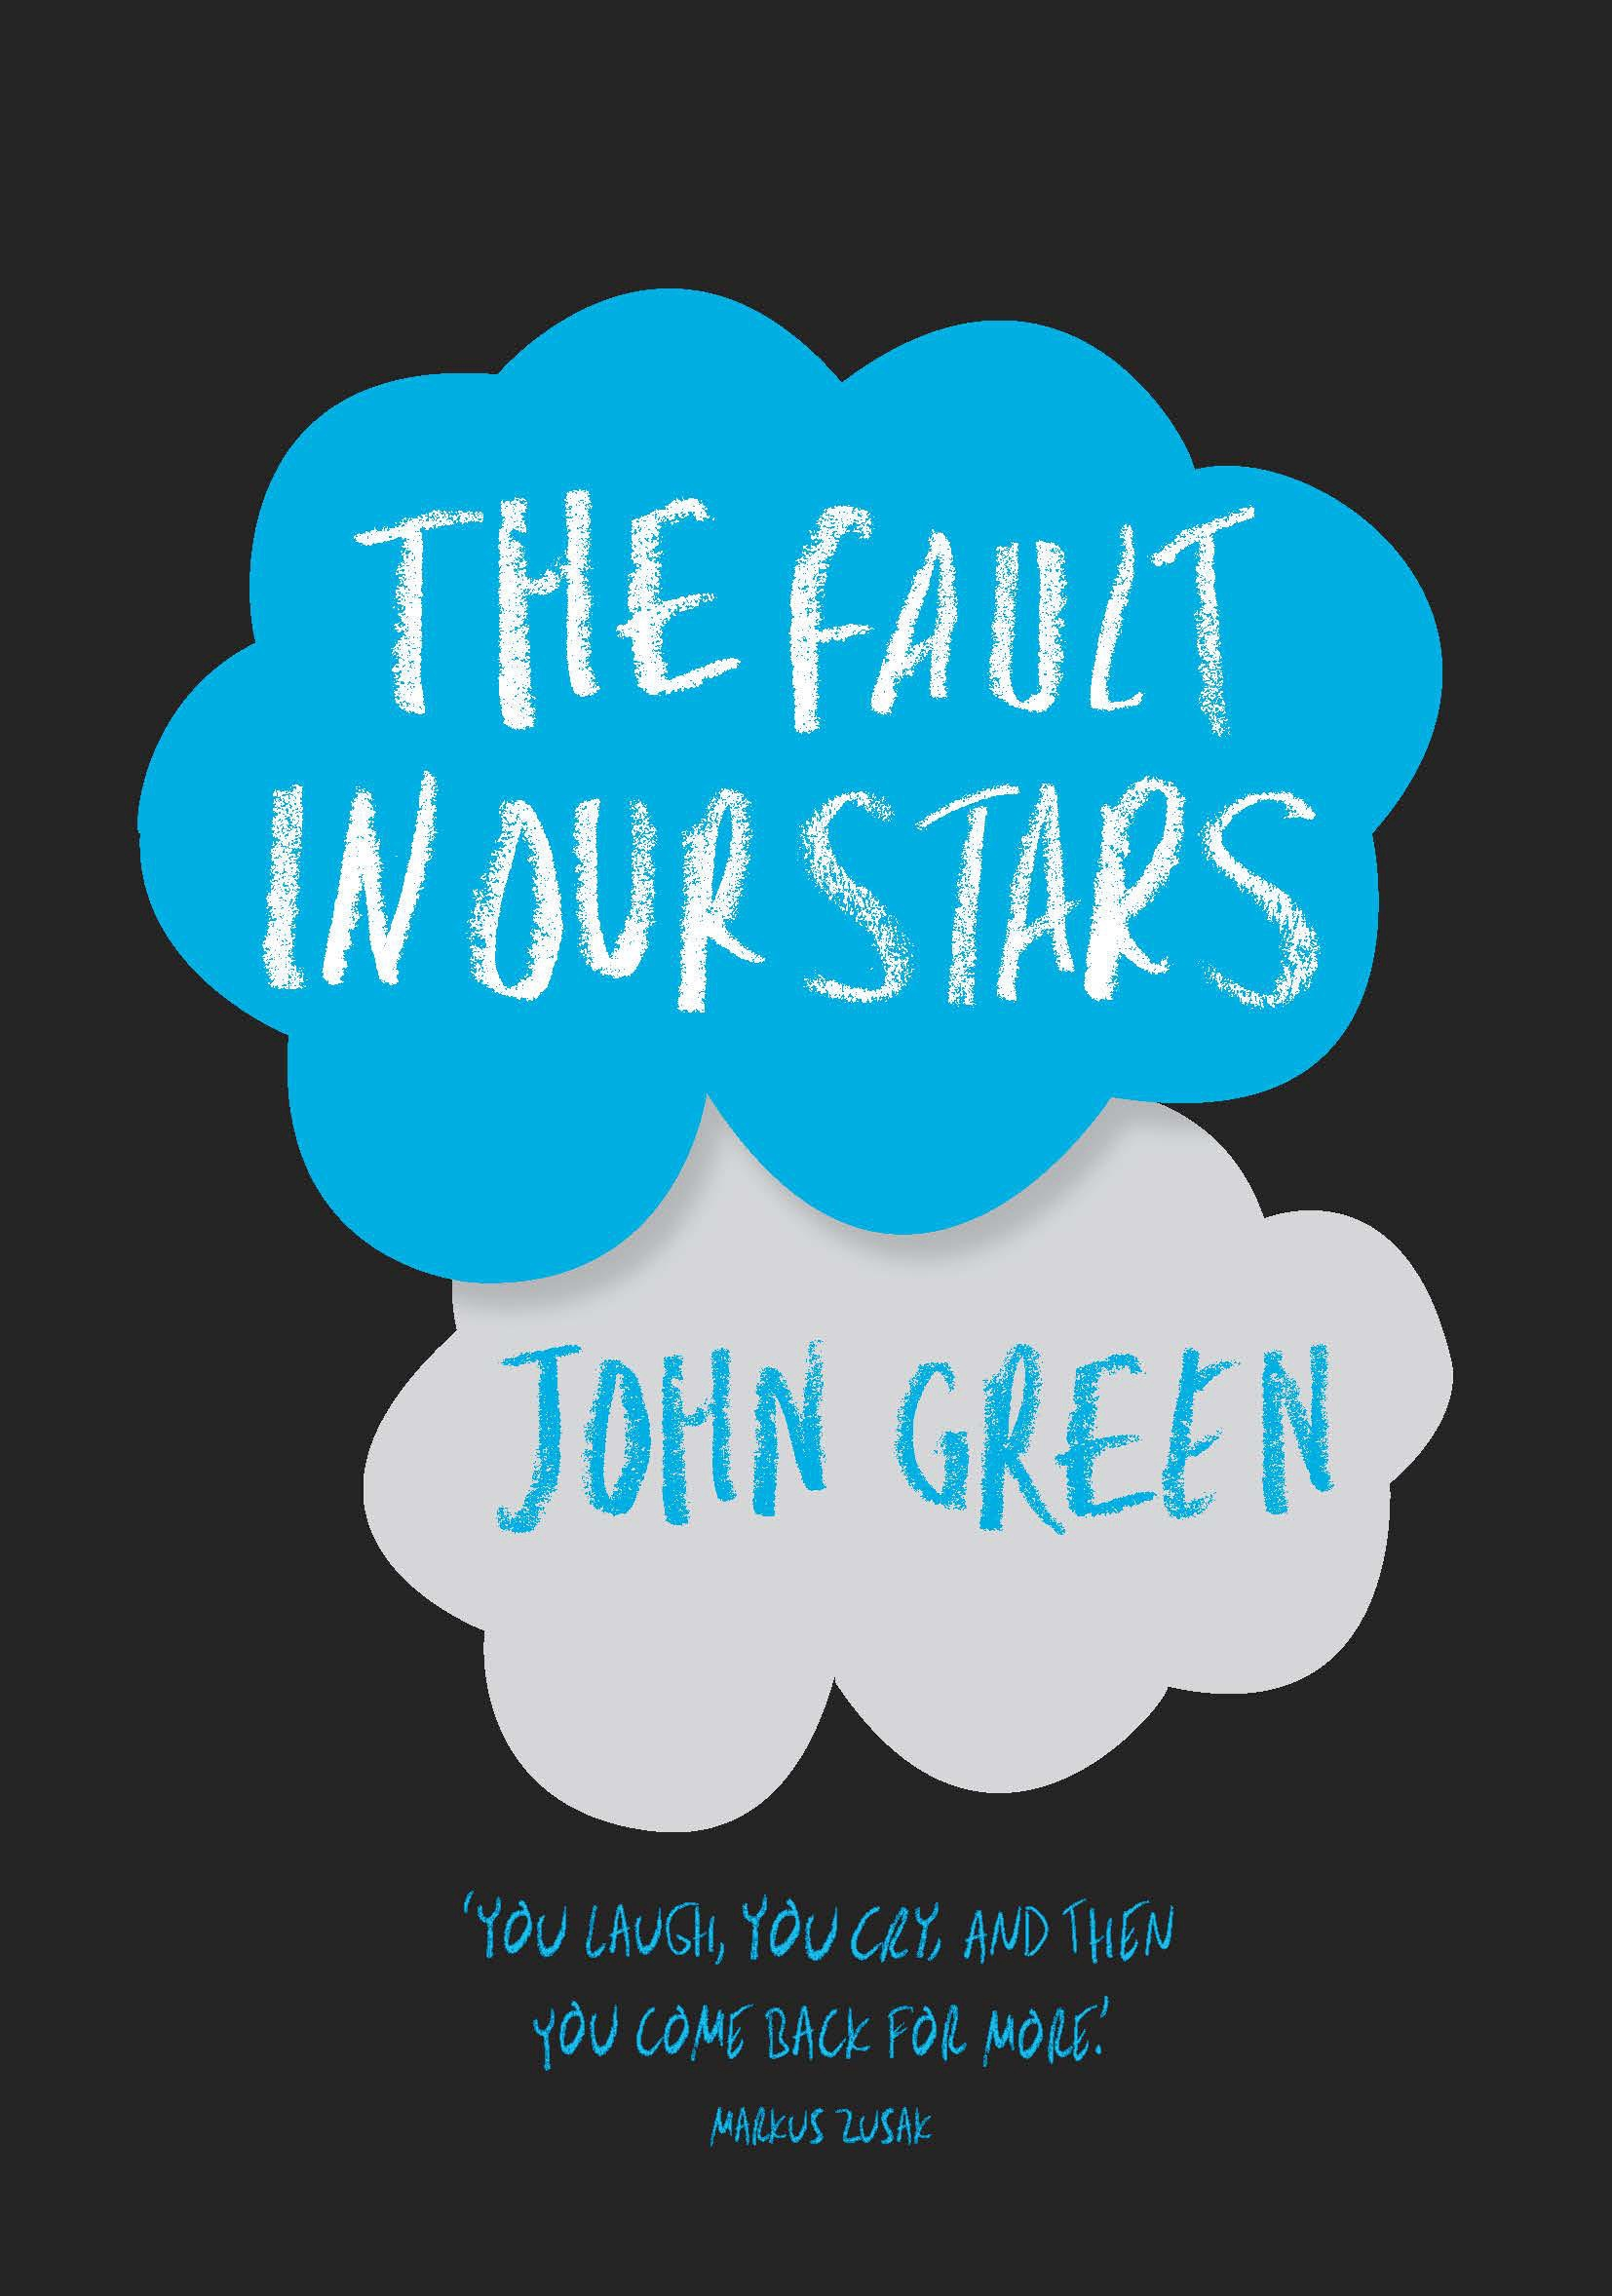 3. The Fault in our stars